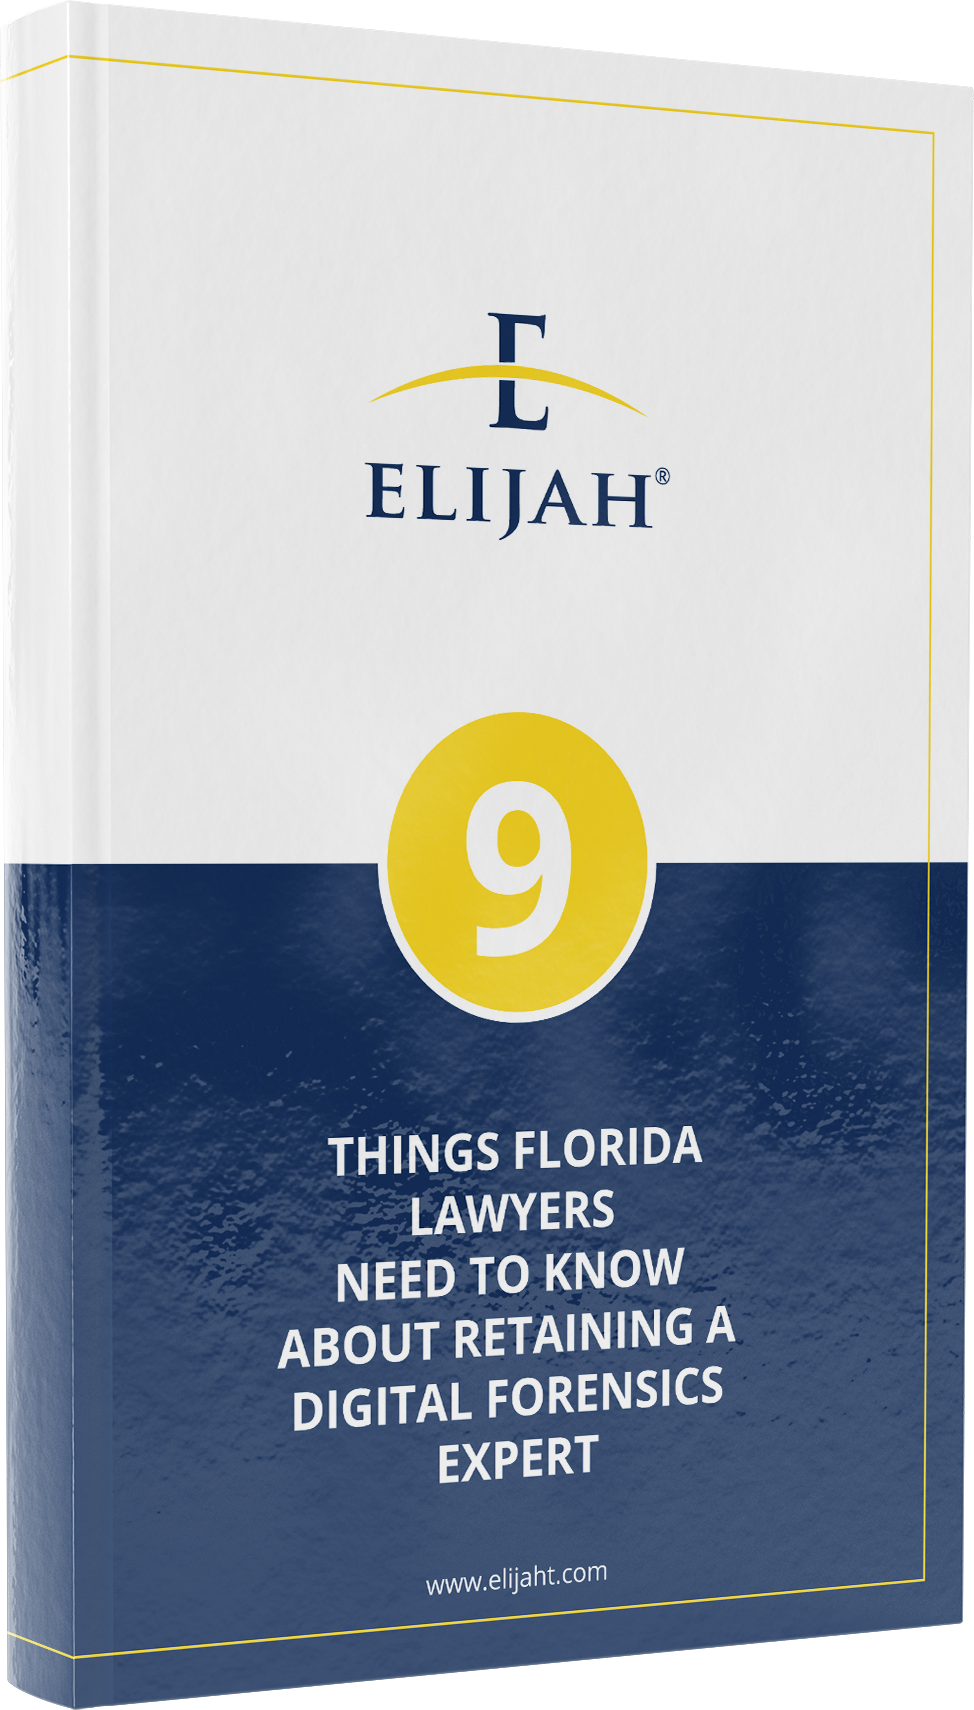 9-Things-Florida-Lawyers-Need-To-Know-About-Retaining-A-Digital-Forensics-Expert